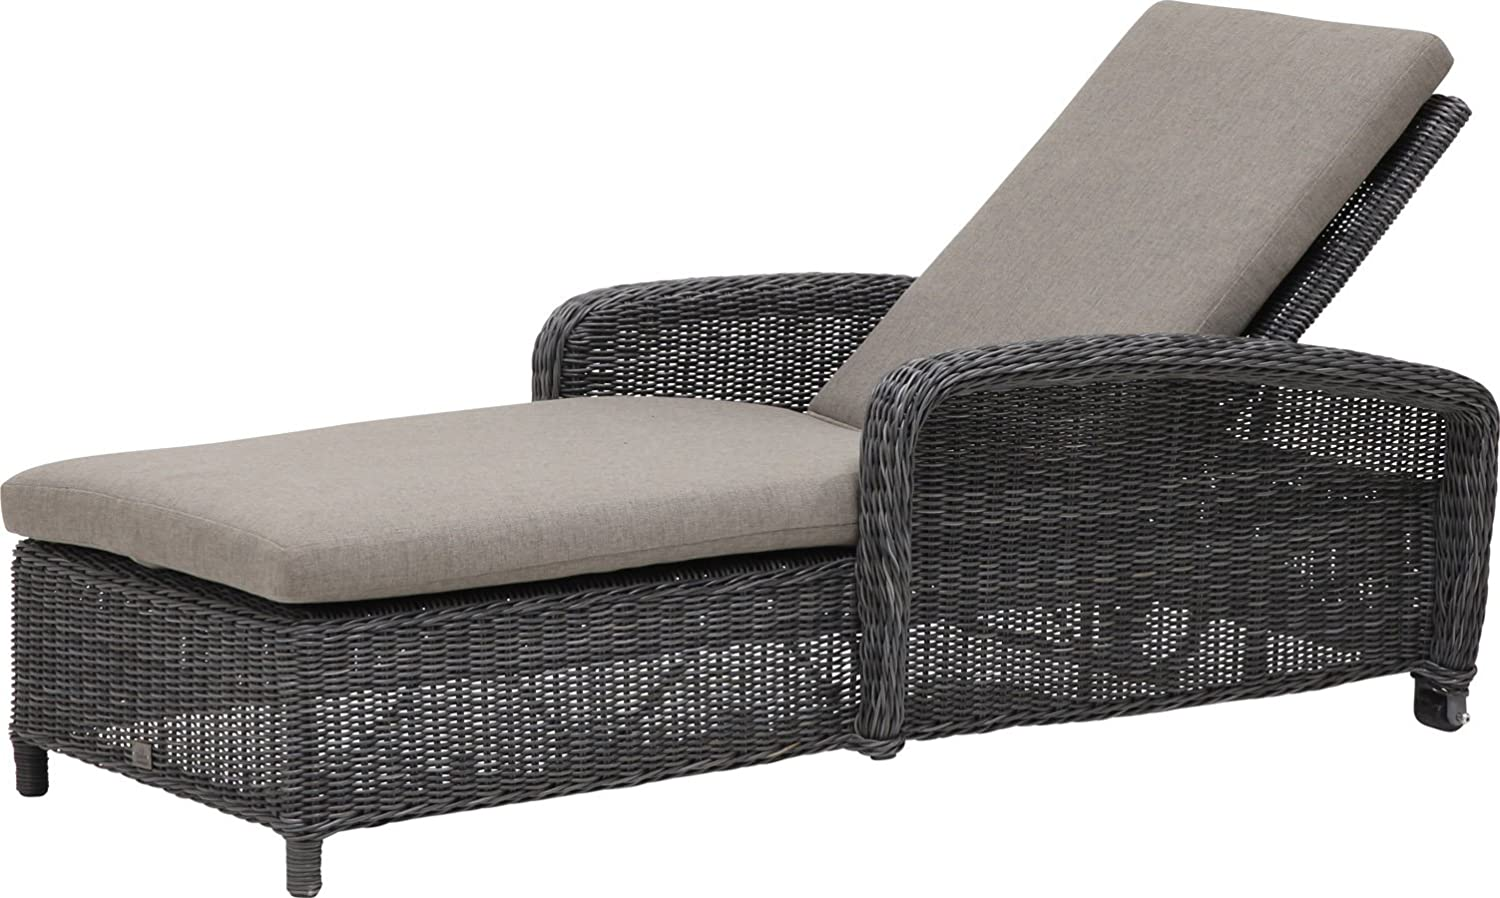 4Seasons Somerset Rollenliege Geflecht Charcoal incl. Kissen günstig